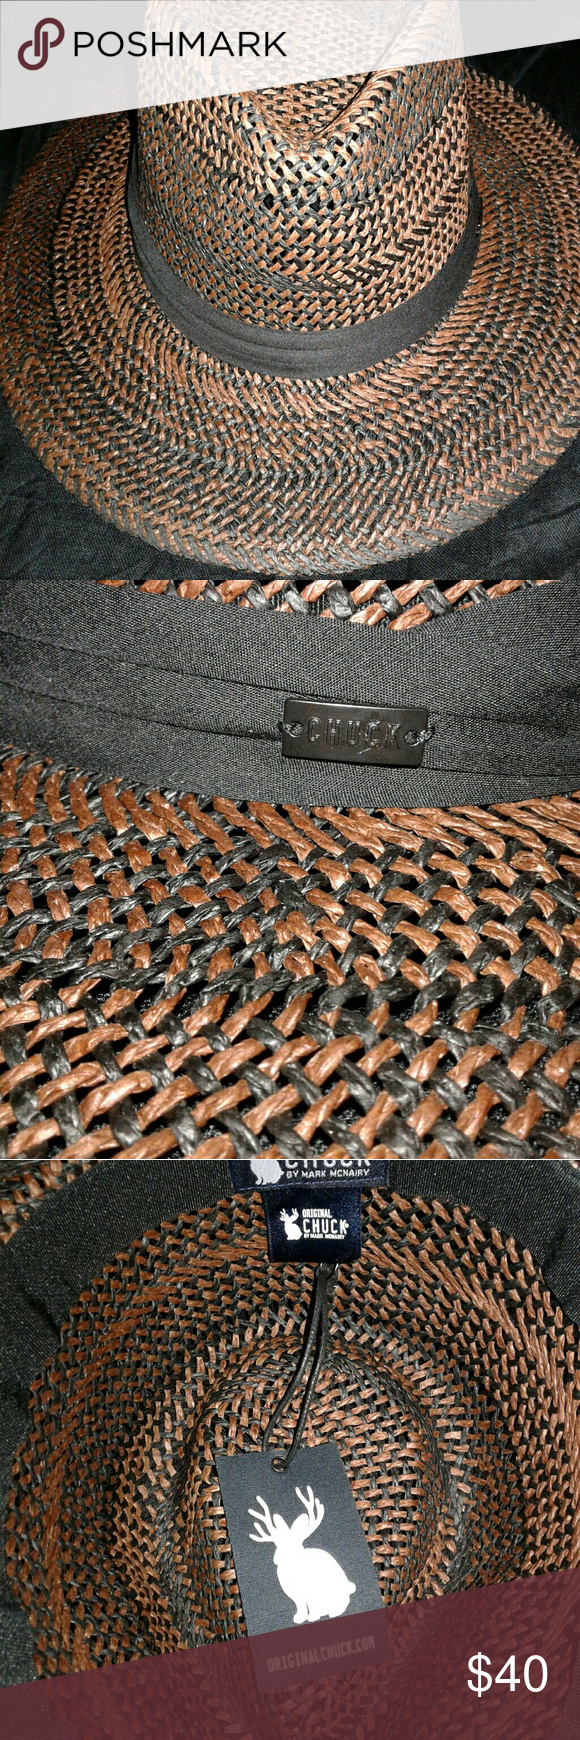 37a8811311f60 ORIGINAL CHUCK BY MARK MCNAIRY HAT New ORIGINAL CHUCK BY MARKMCNAIRY Hat MARK  MCNAIRY Accessories Hats